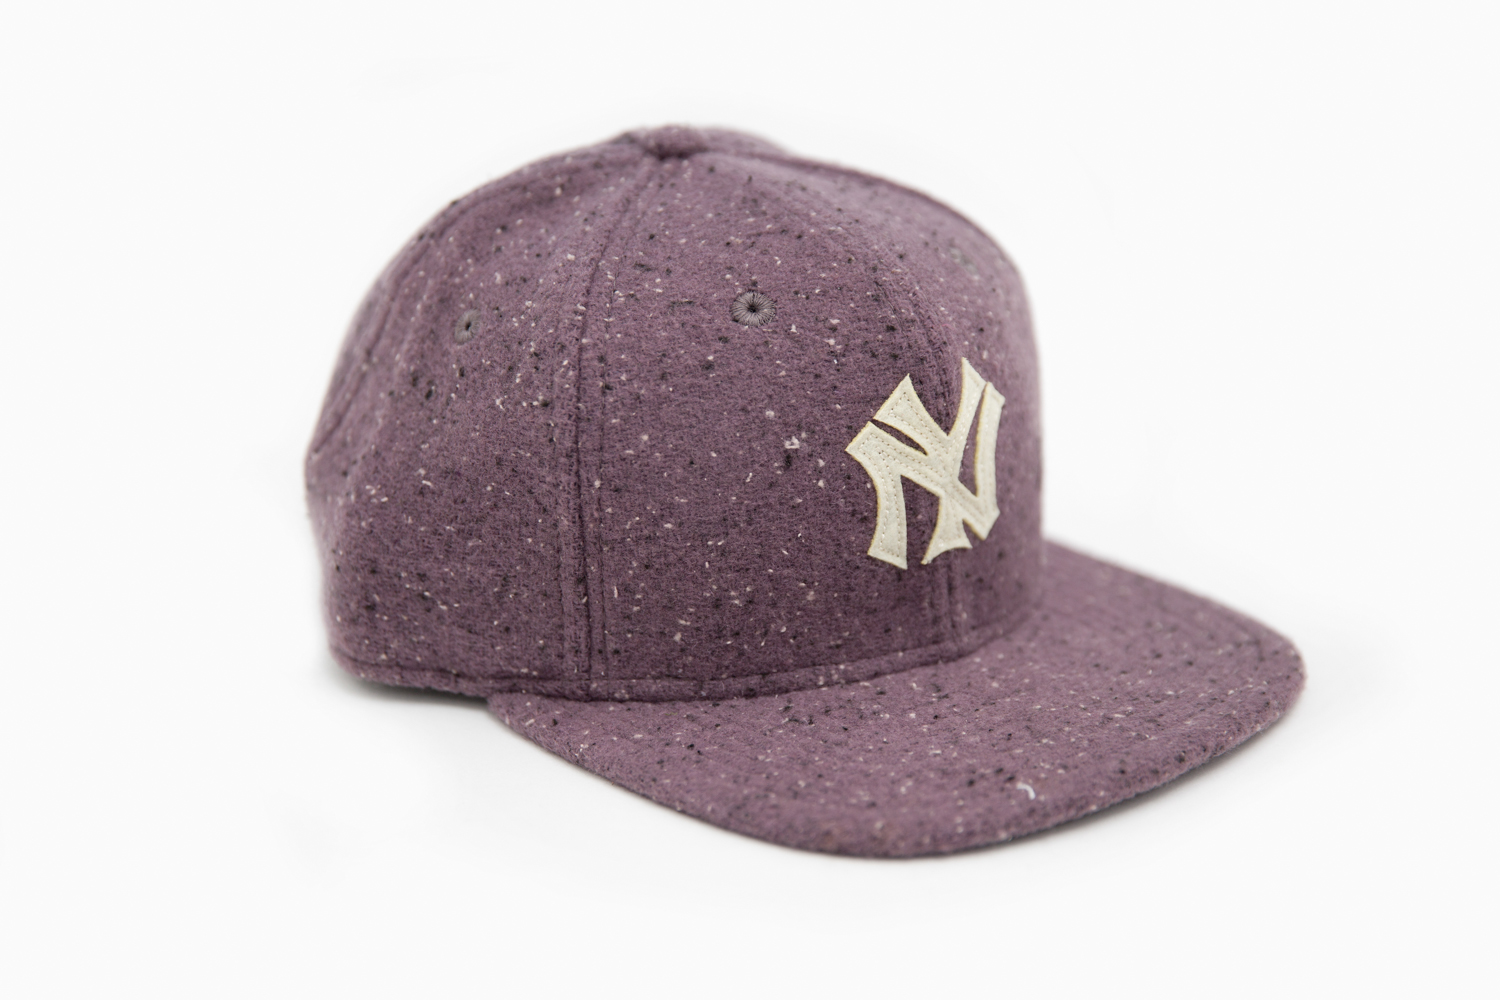 New Era Vintage Wool 9fifty Snapback Collection Size